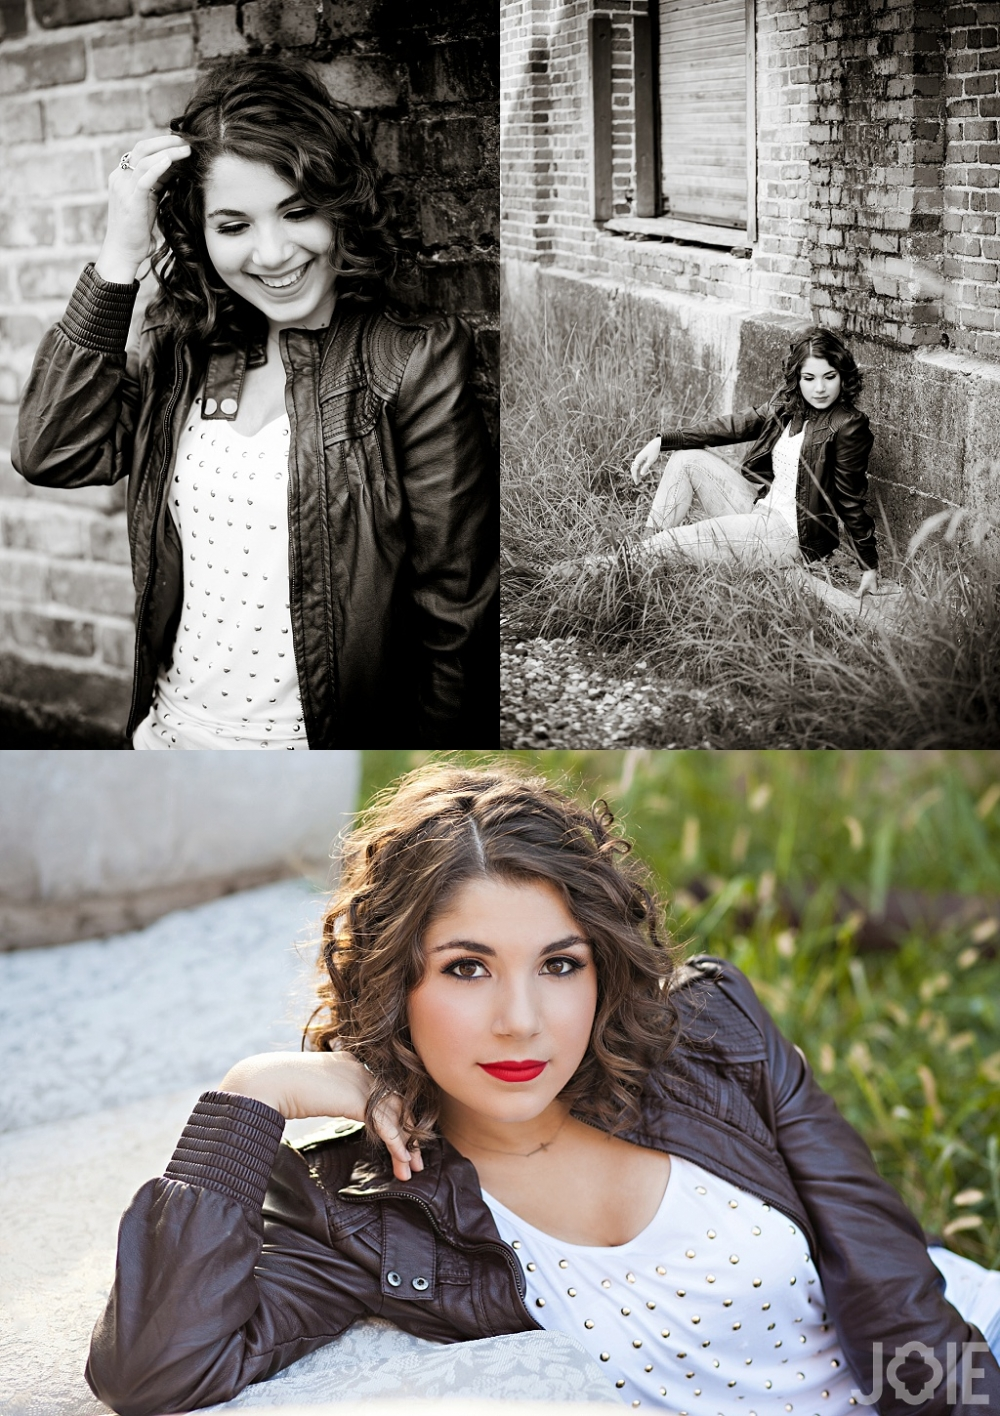 Memorial high school senior photography